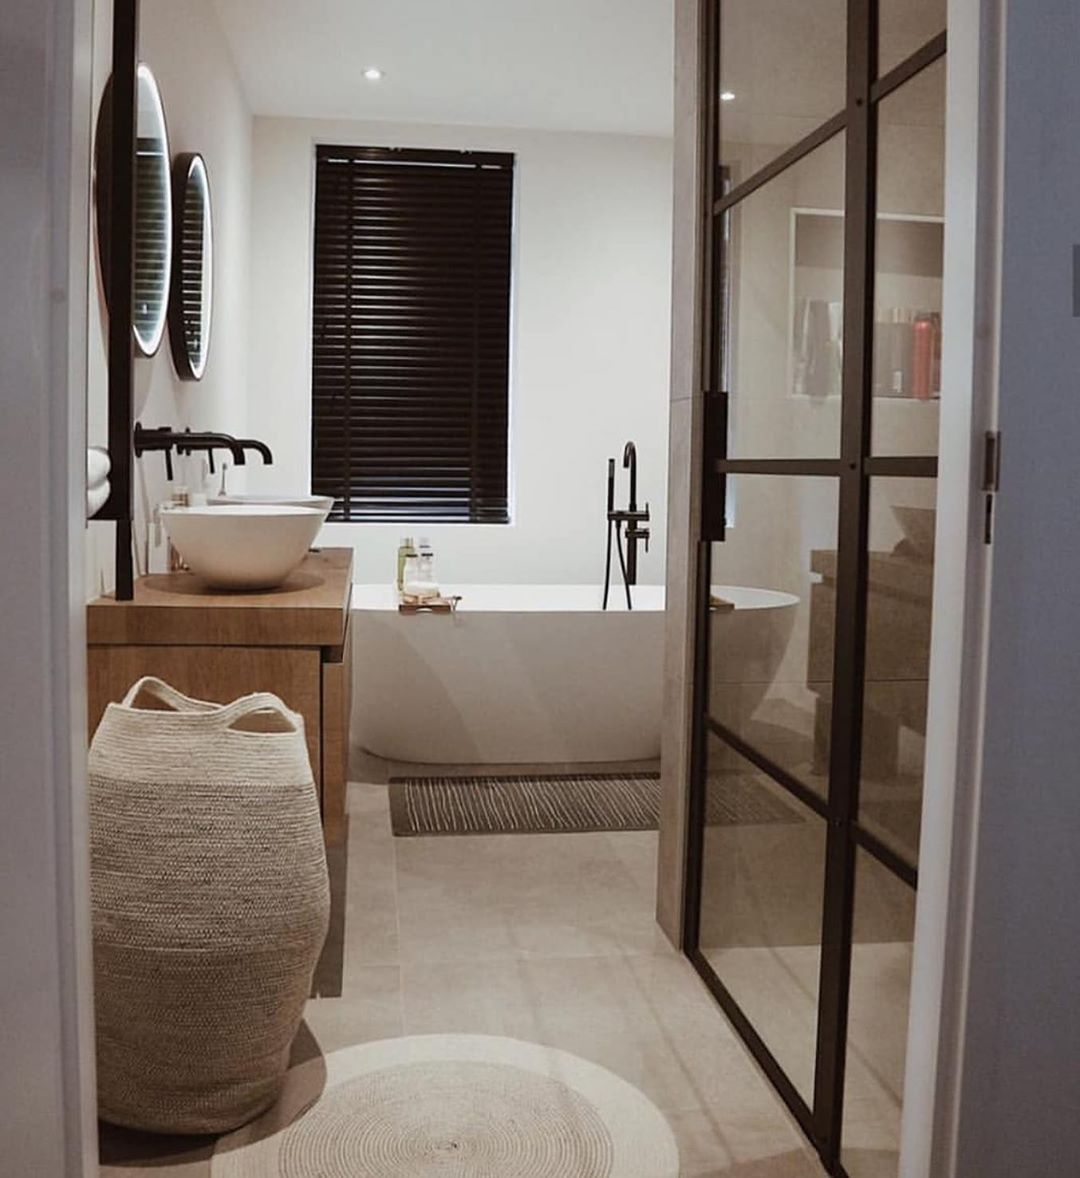 Bathroom Design Inspi Home By Mel Picoftheday Toilette Wc